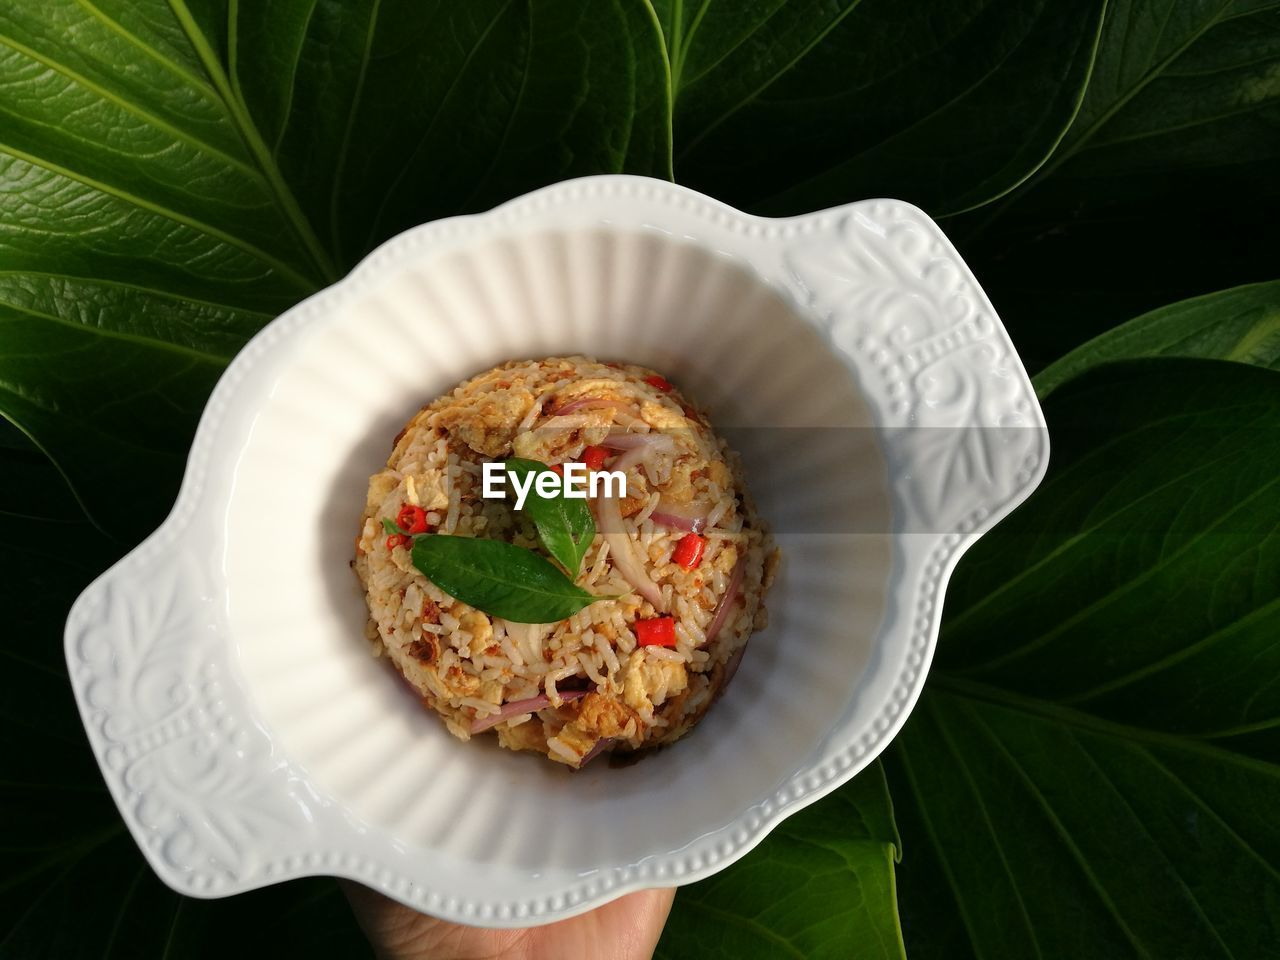 leaf, freshness, plant part, food, ready-to-eat, food and drink, plate, serving size, healthy eating, indoors, wellbeing, no people, rice - food staple, close-up, plant, green color, still life, directly above, vegetable, high angle view, leaves, herb, garnish, crockery, snack